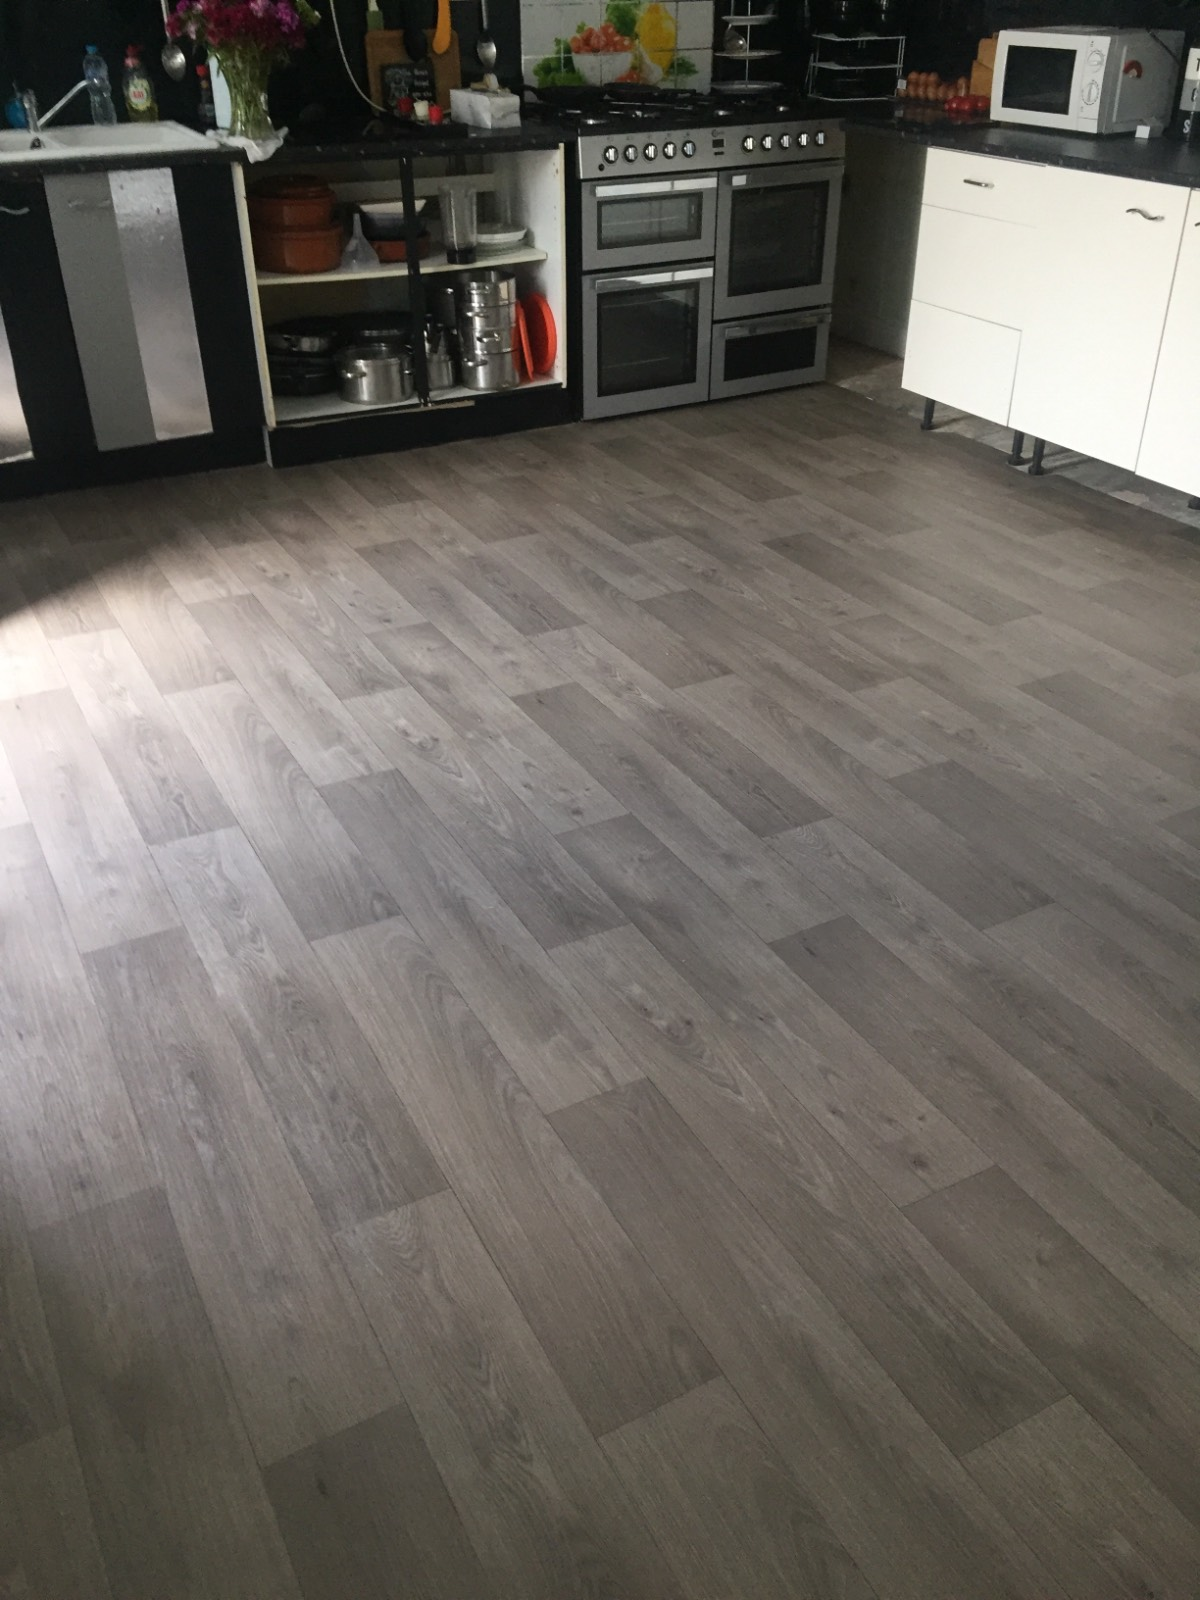 grey and brown vinyl flooring with wooden design in kitchen